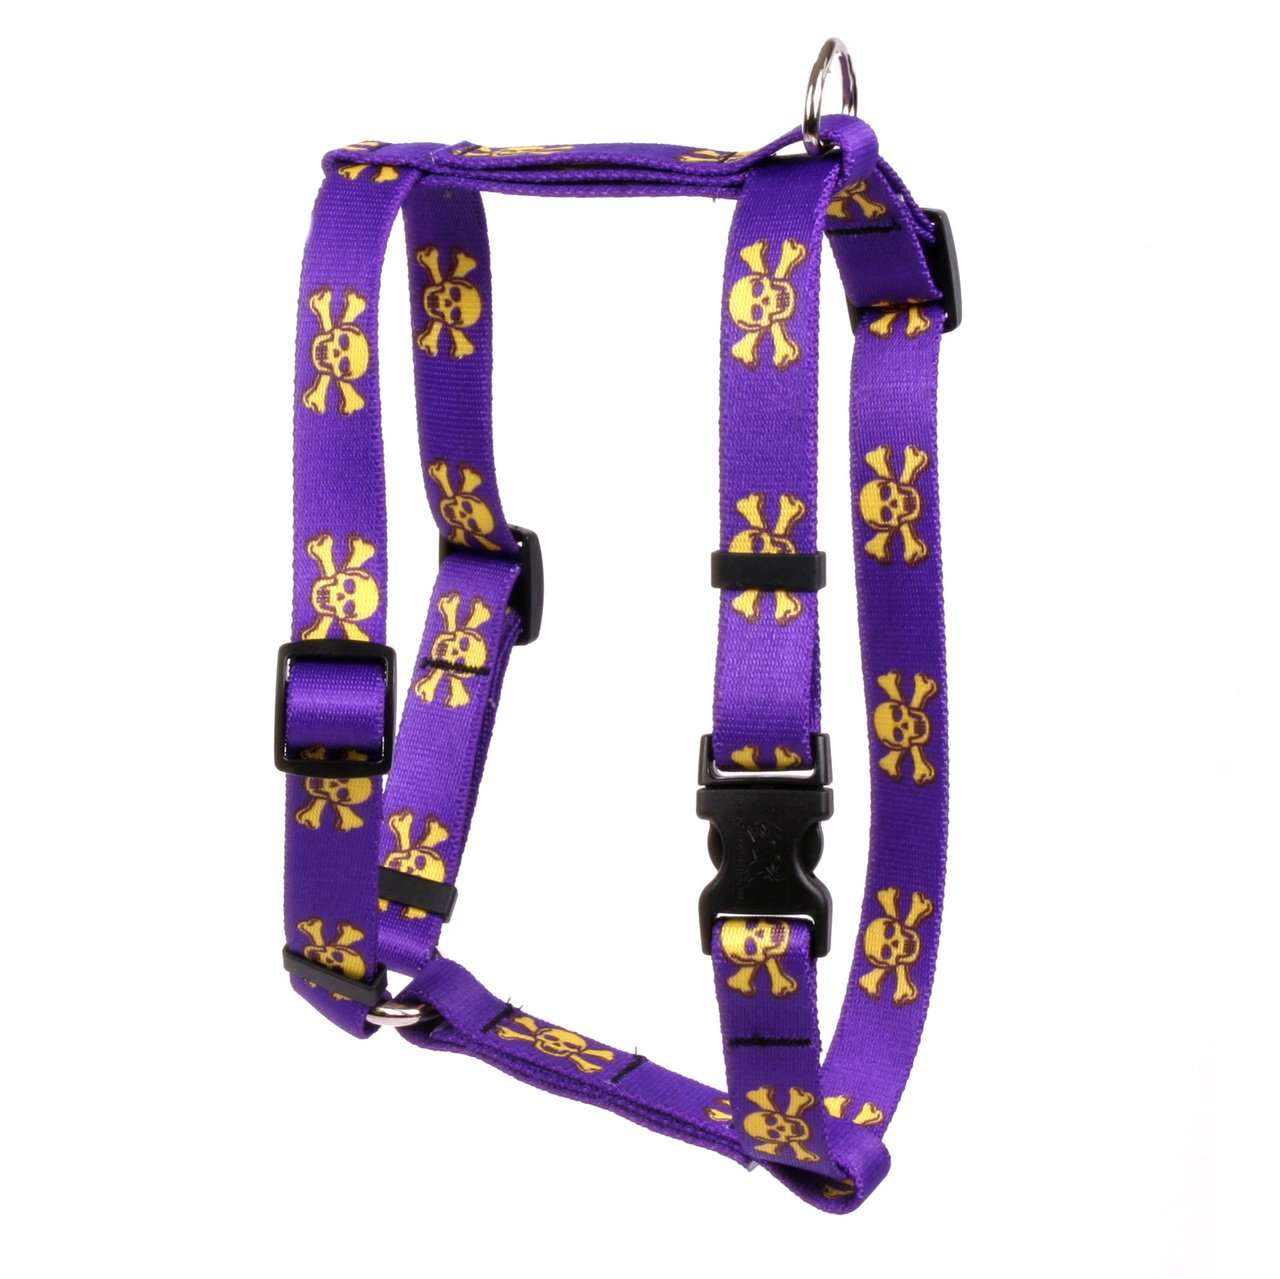 Yellow Dog Design Purple Gold Skulls Roman H Dog Harness, Small/Medium-3/4 Wide fits Chest of 14 to 20'' by Yellow Dog Design (Image #1)